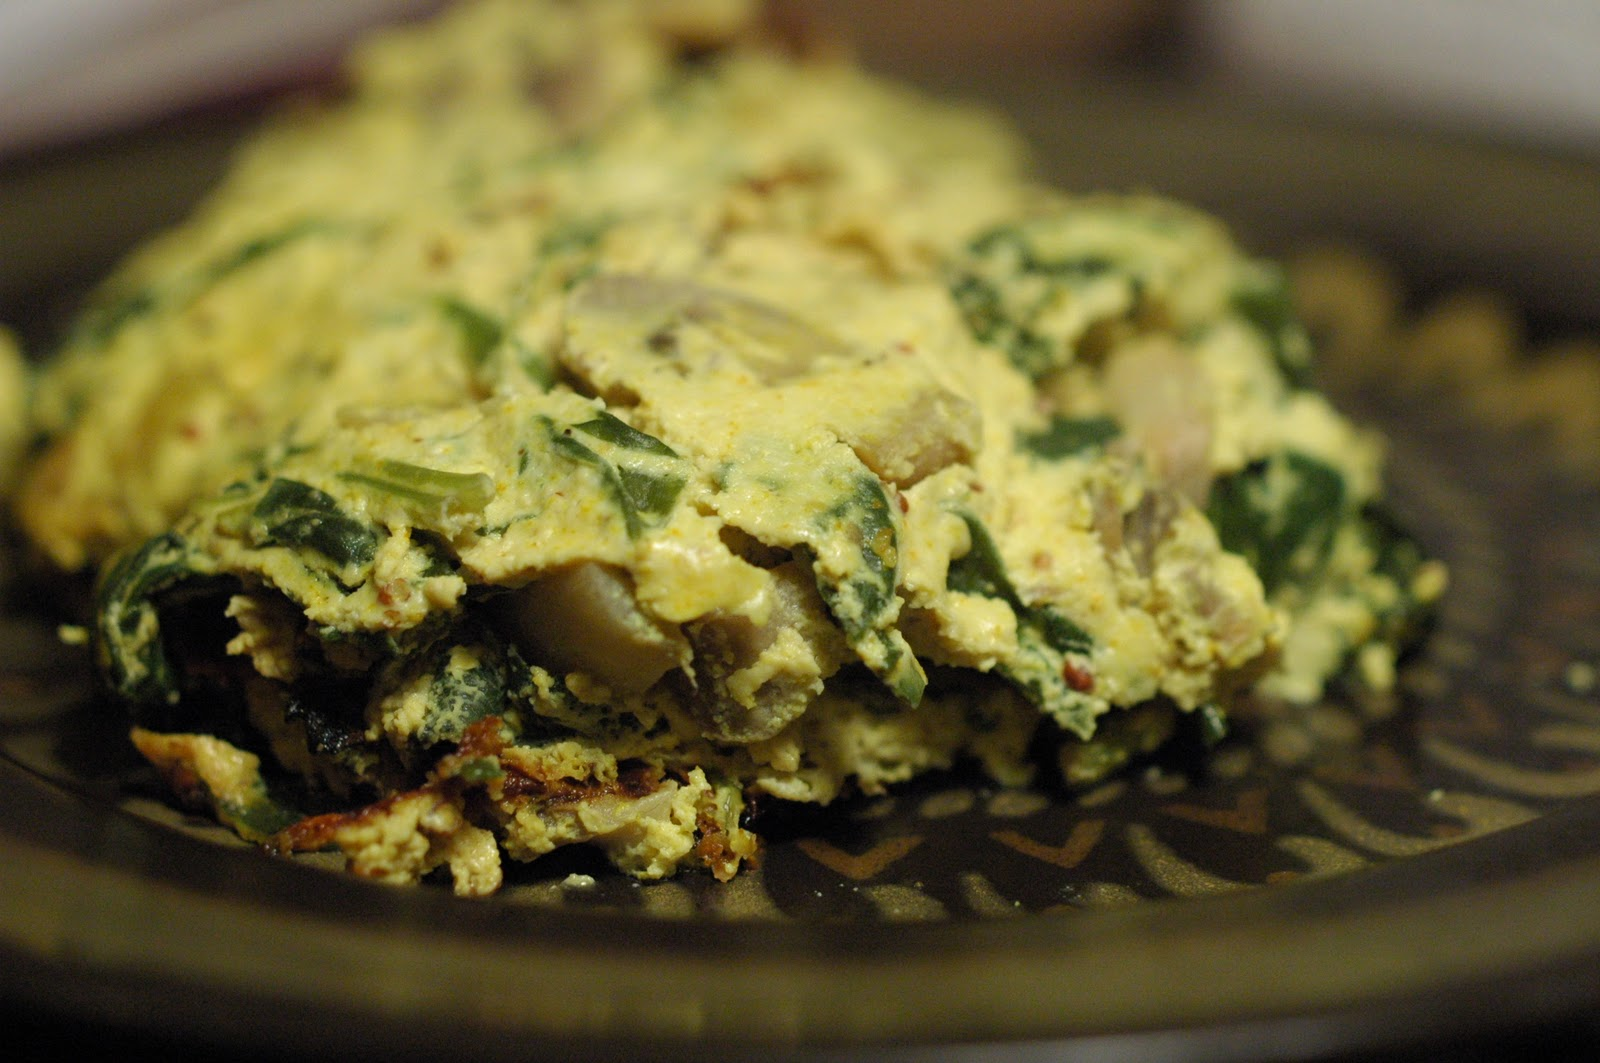 The Everyday Vegetarian: Vegan spinach and mushroom frittata